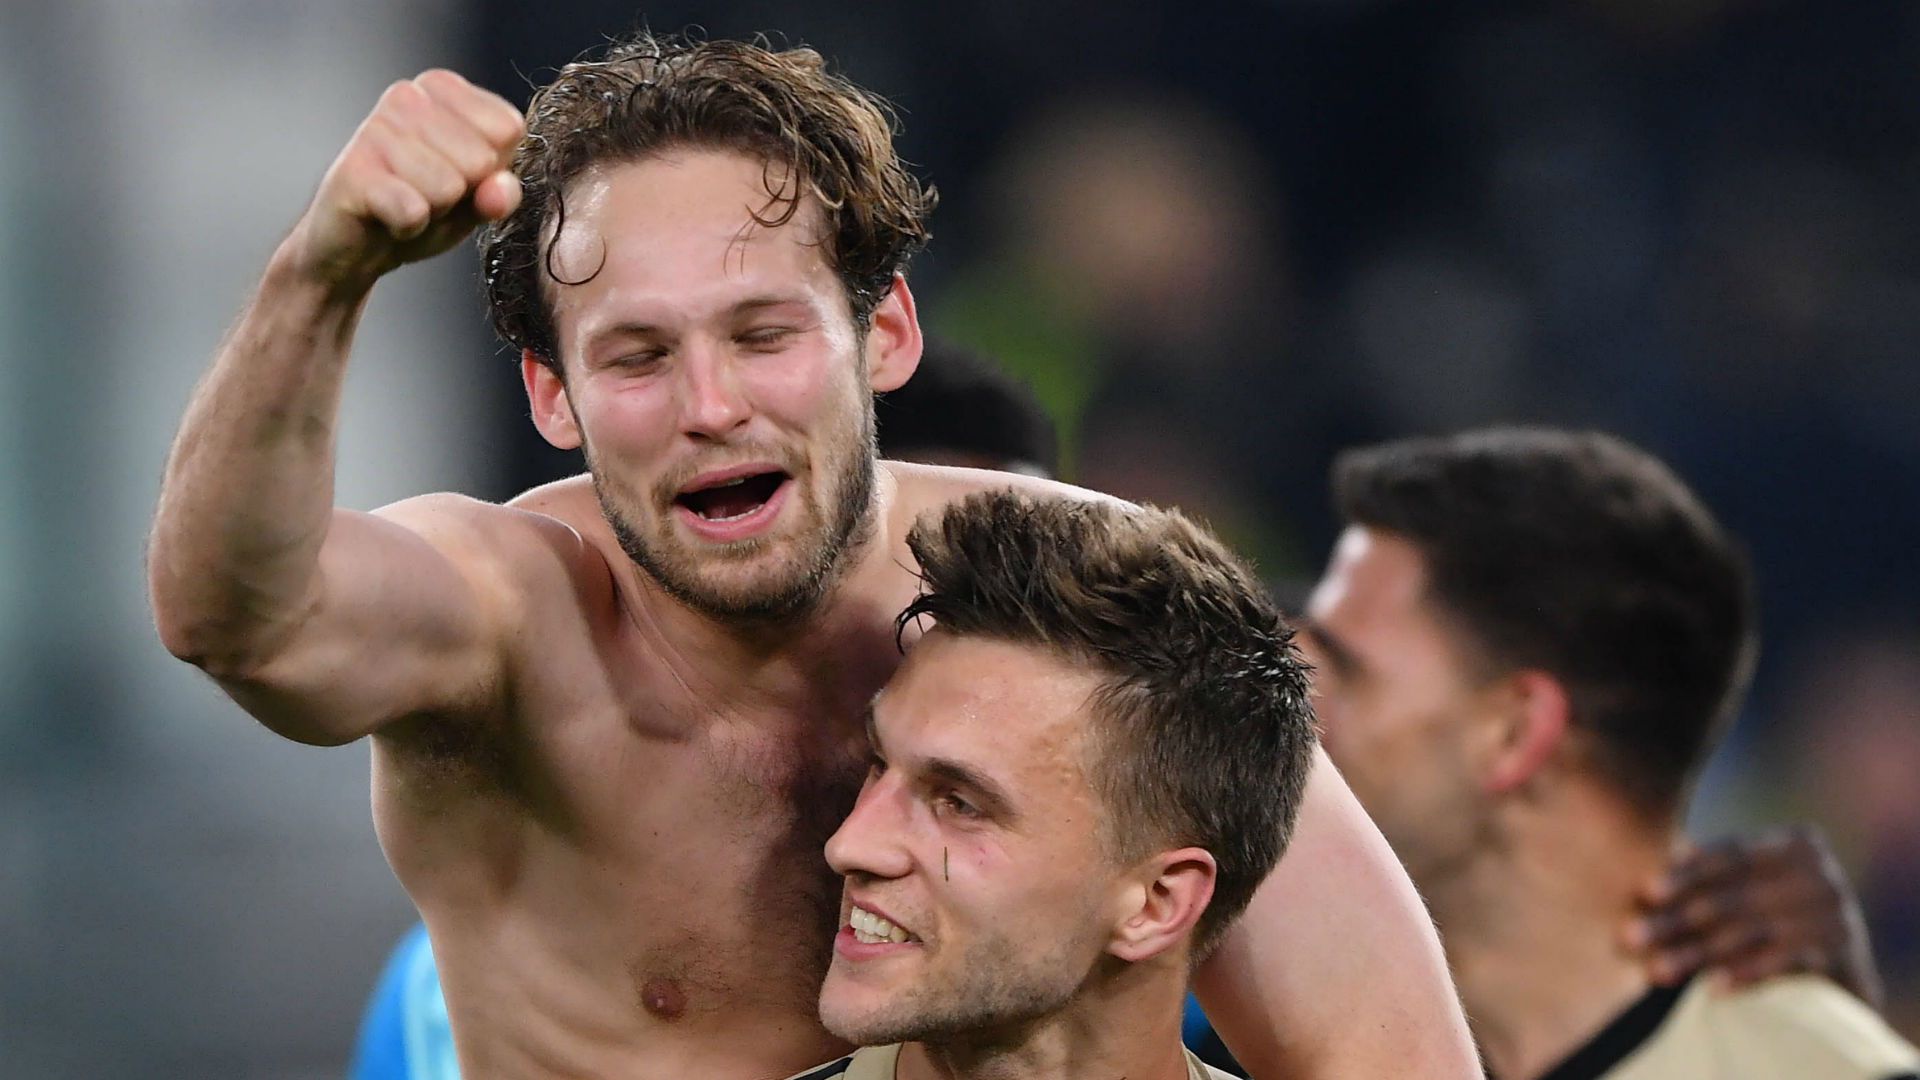 Ajax have to be careful with the beers after Juve triumph, jokes Blind